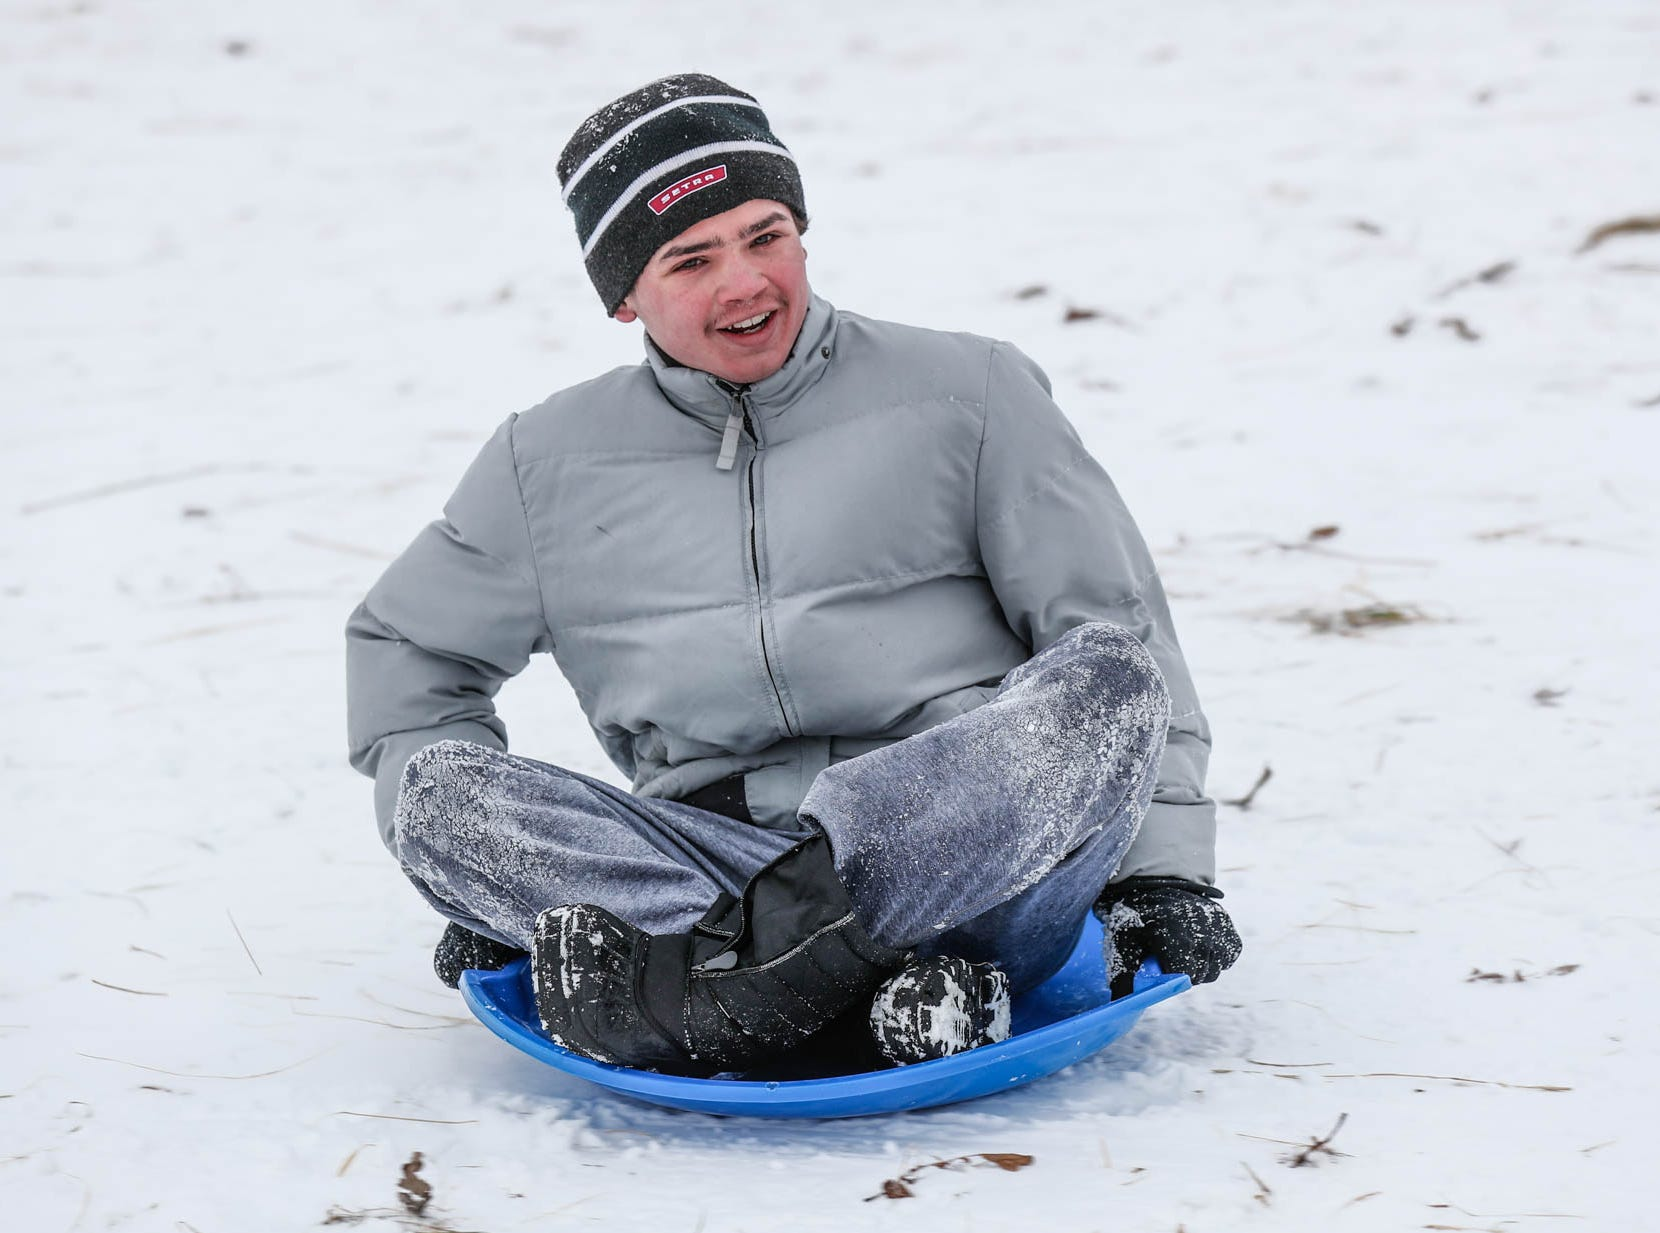 Isaac Cardwell zooms along on a saucer sled at West Park in Carmel Ind. on Sunday, Jan. 13, 2019.